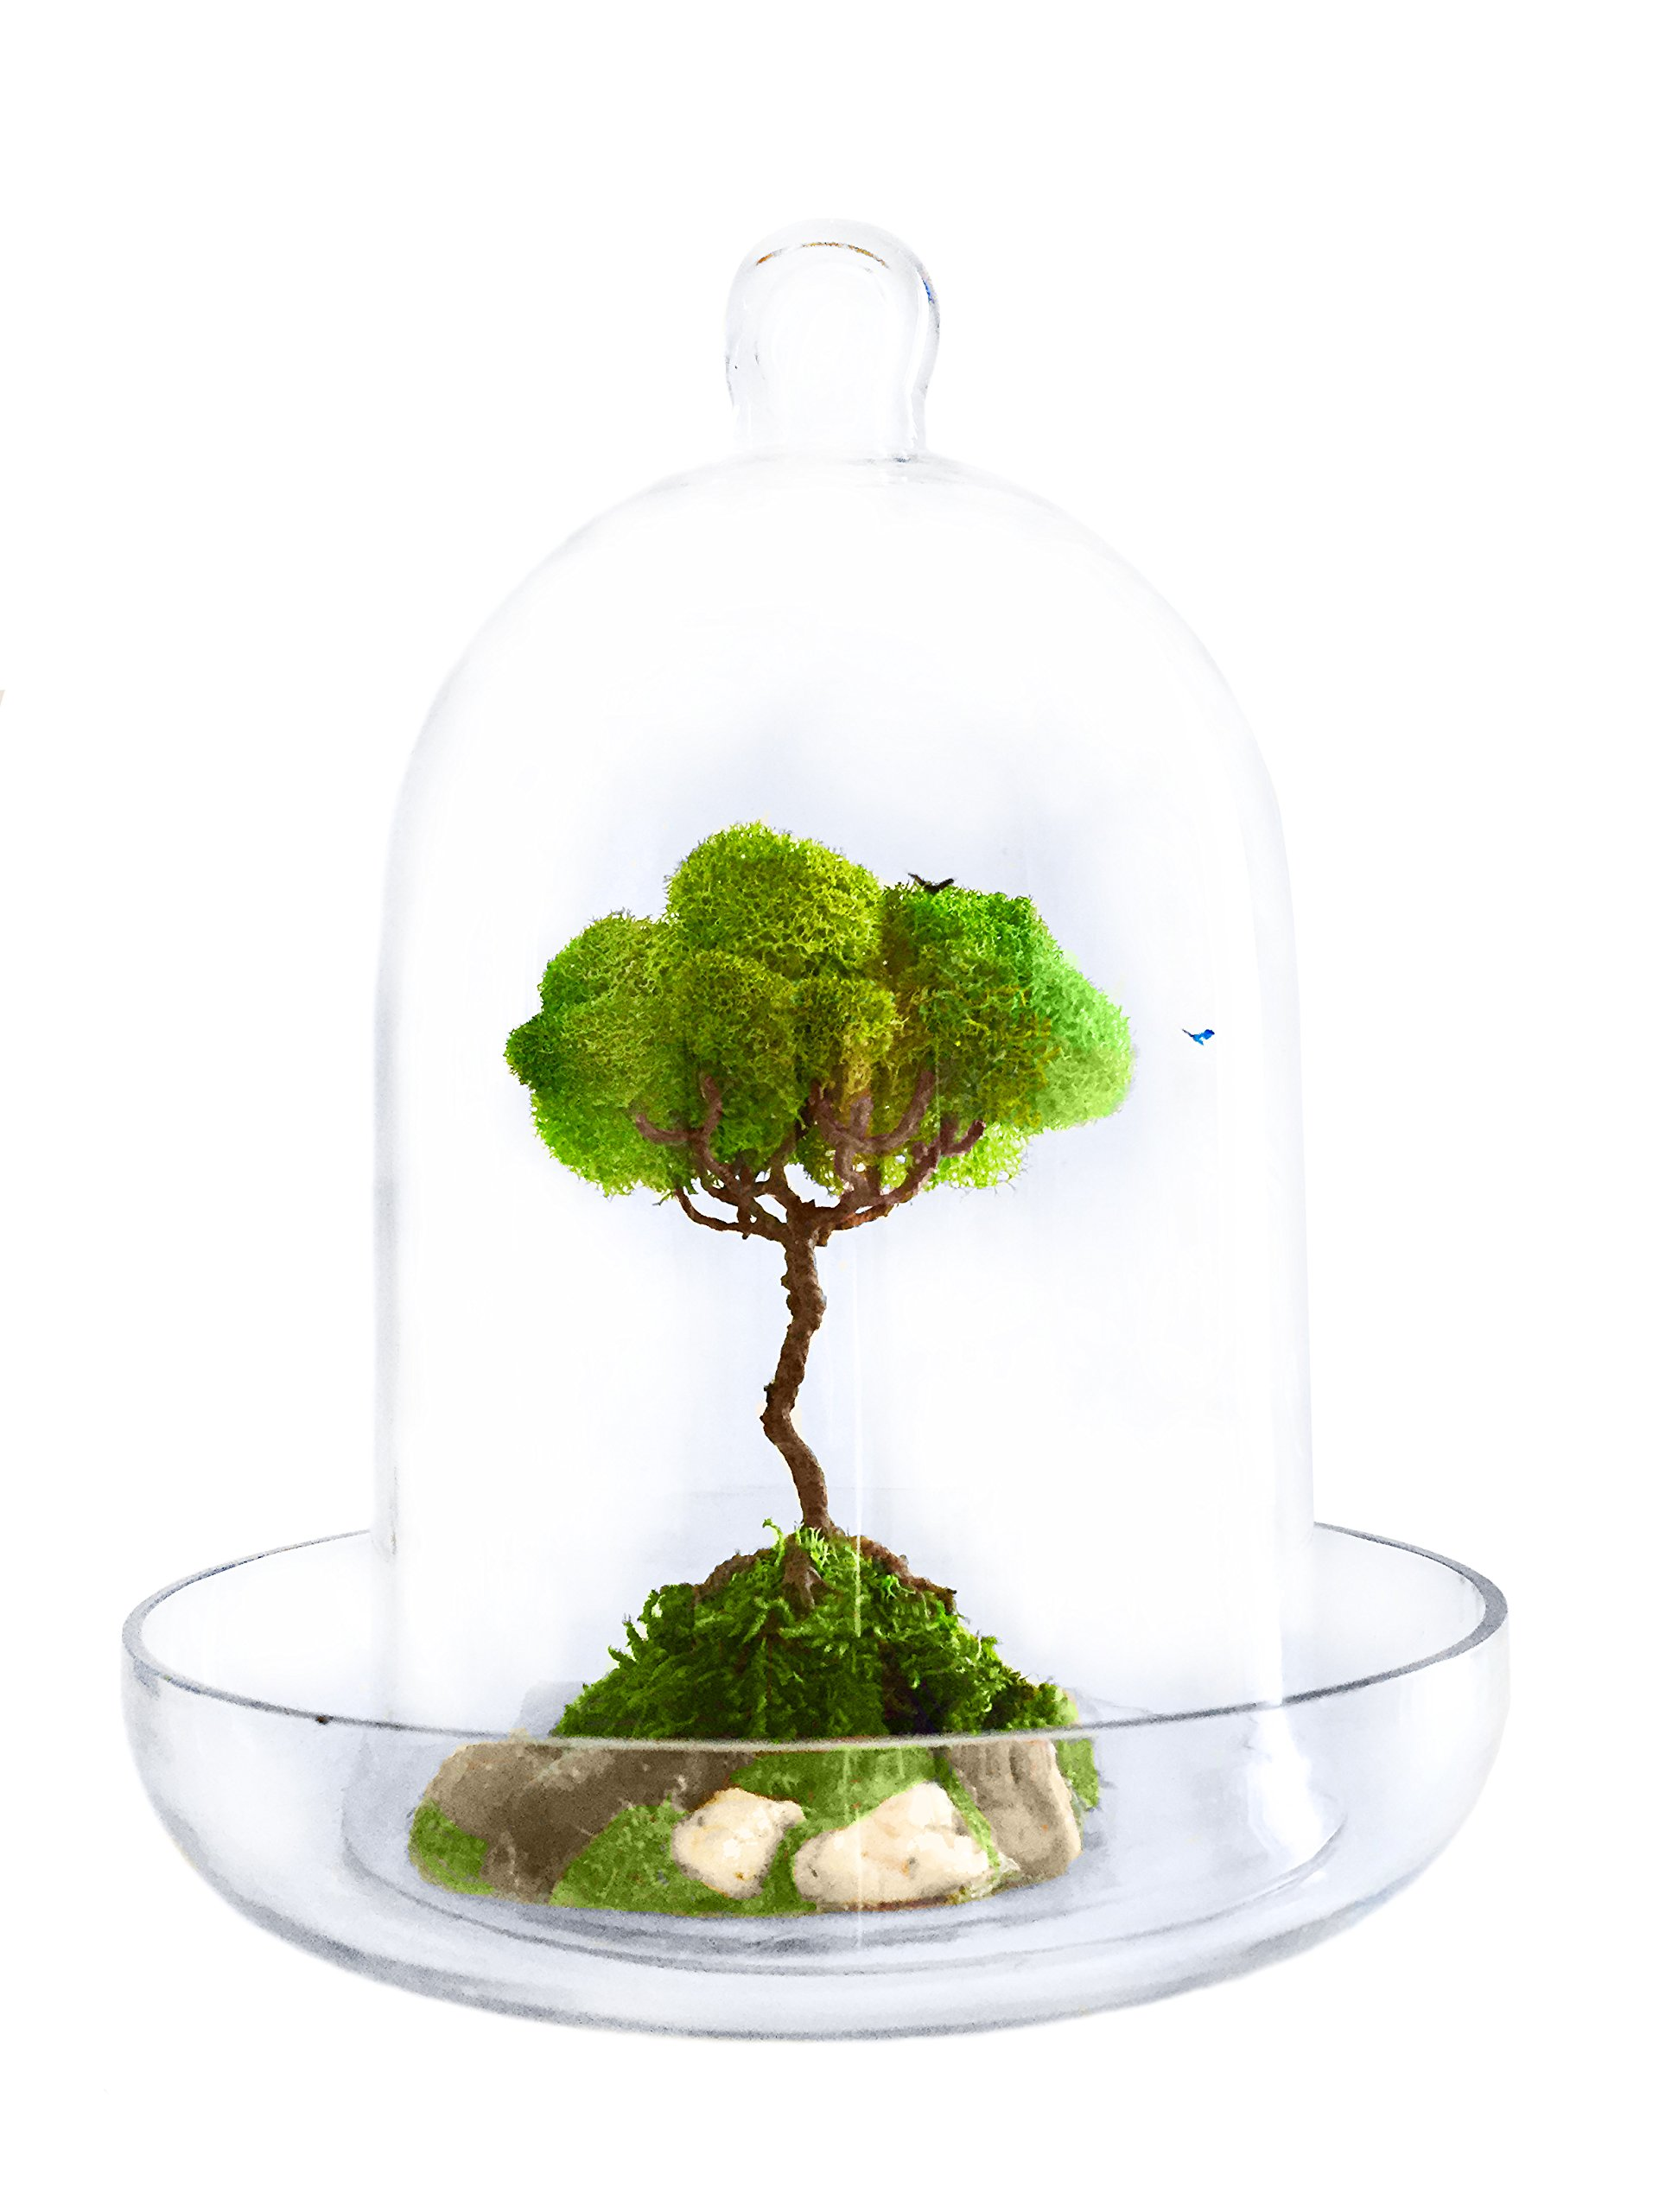 Artree Organic Glass Dome Terrarium - Artificial Plant Decoration For Office And Home Bonsai Tree | House Decor | Room Decor | Gifts For Women | Gifts For Men